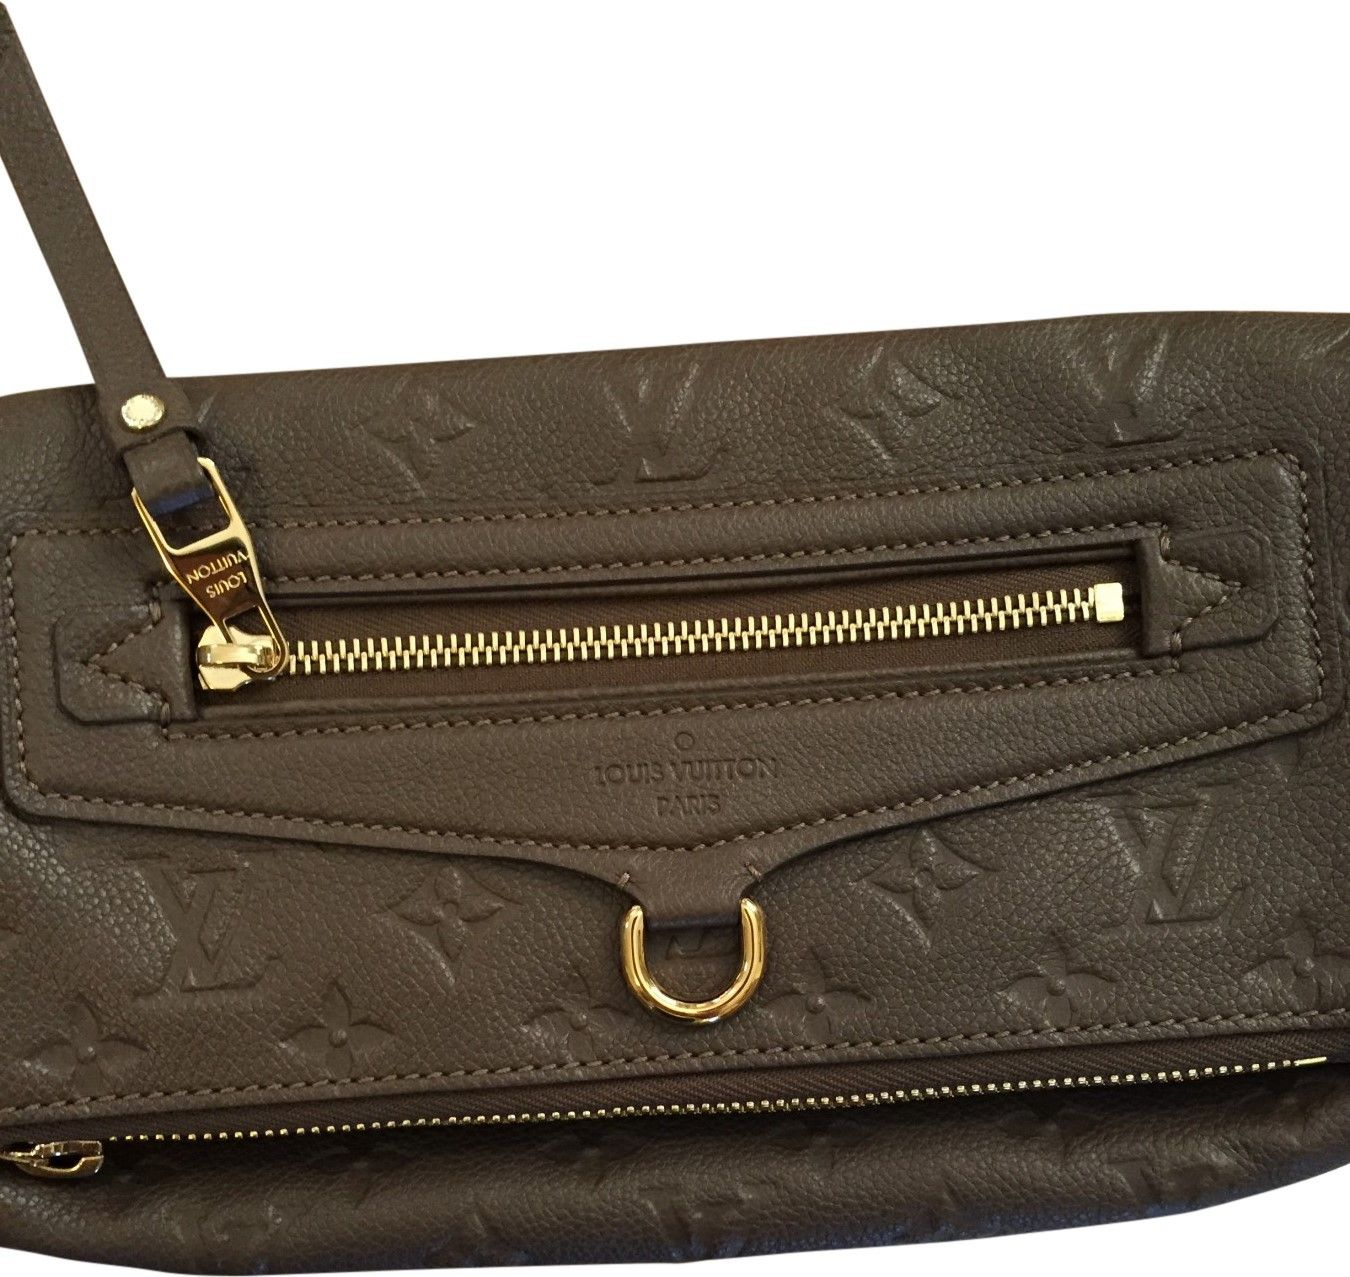 5a2bdb199041 Louis Vuitton Empreinte Petillante Clutch. Best place to buy and sell Louis  Vuitton! www.reetzy.com